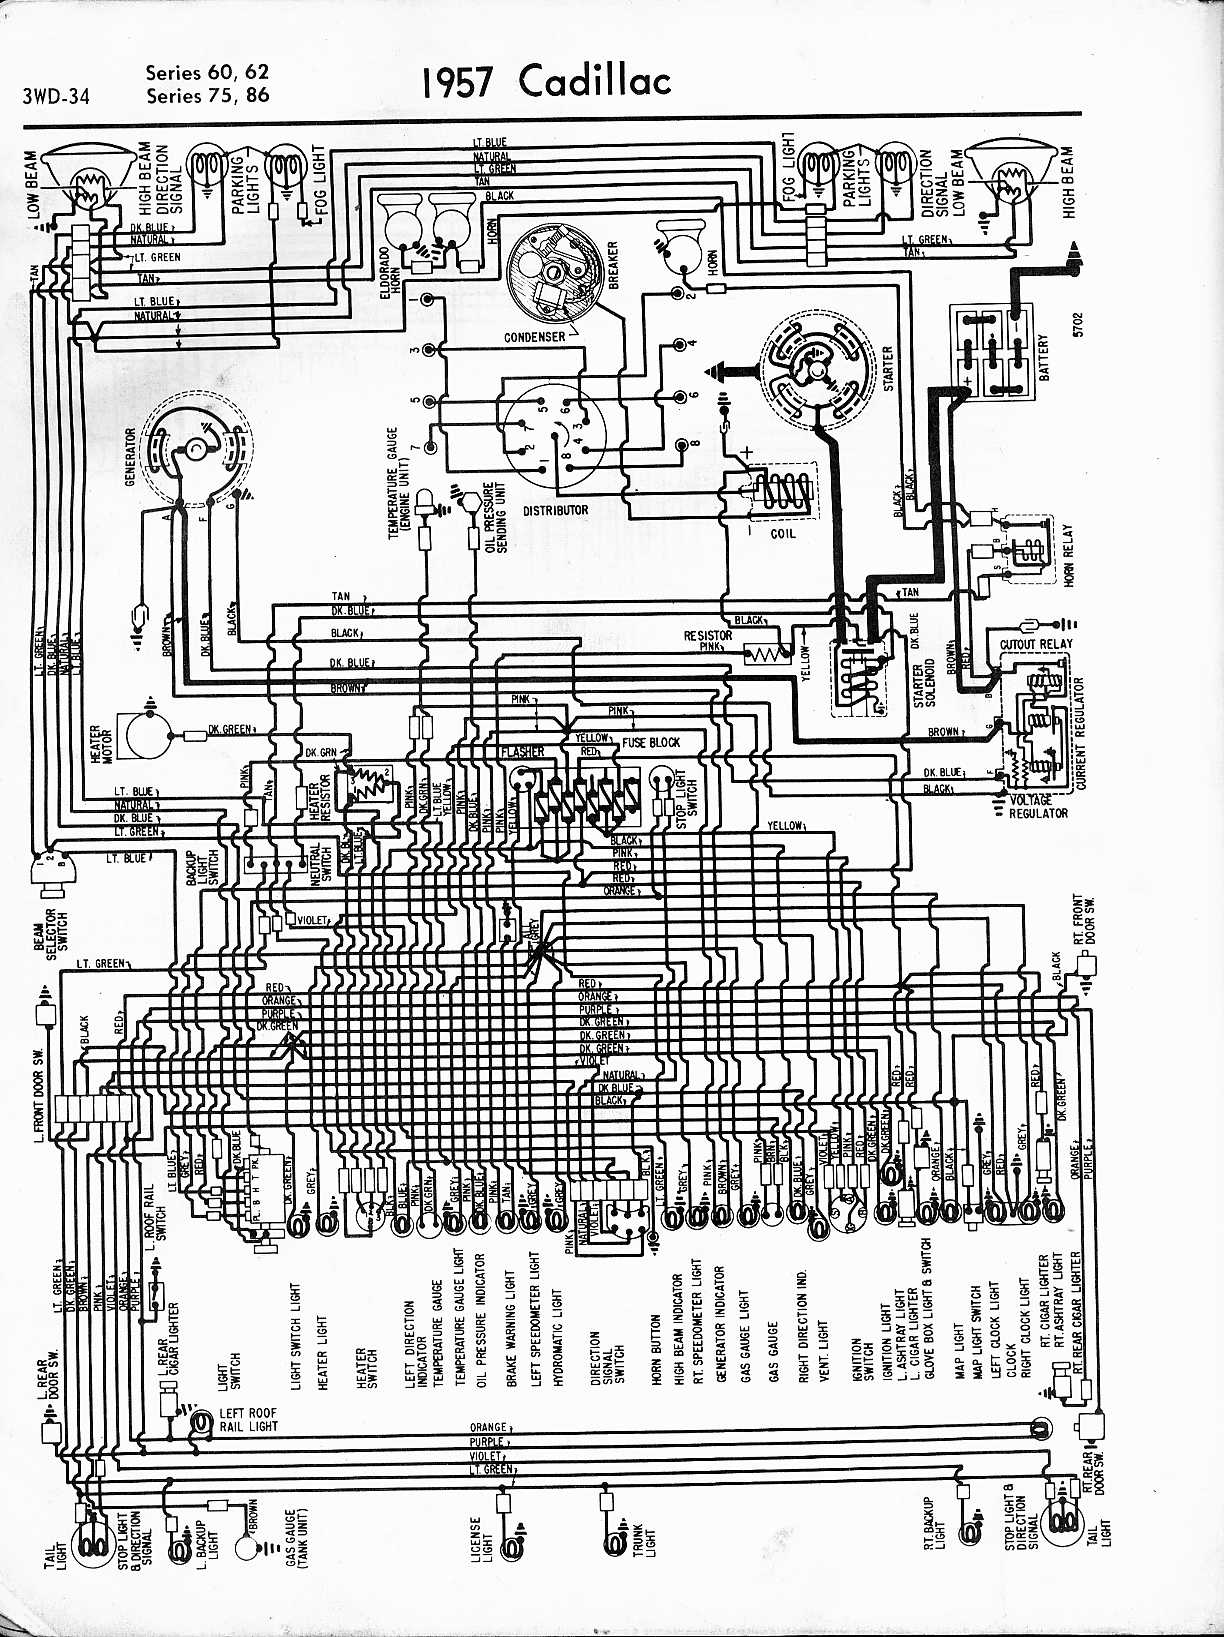 2004 Cadillac Deville Stereo Wiring Diagram Collection